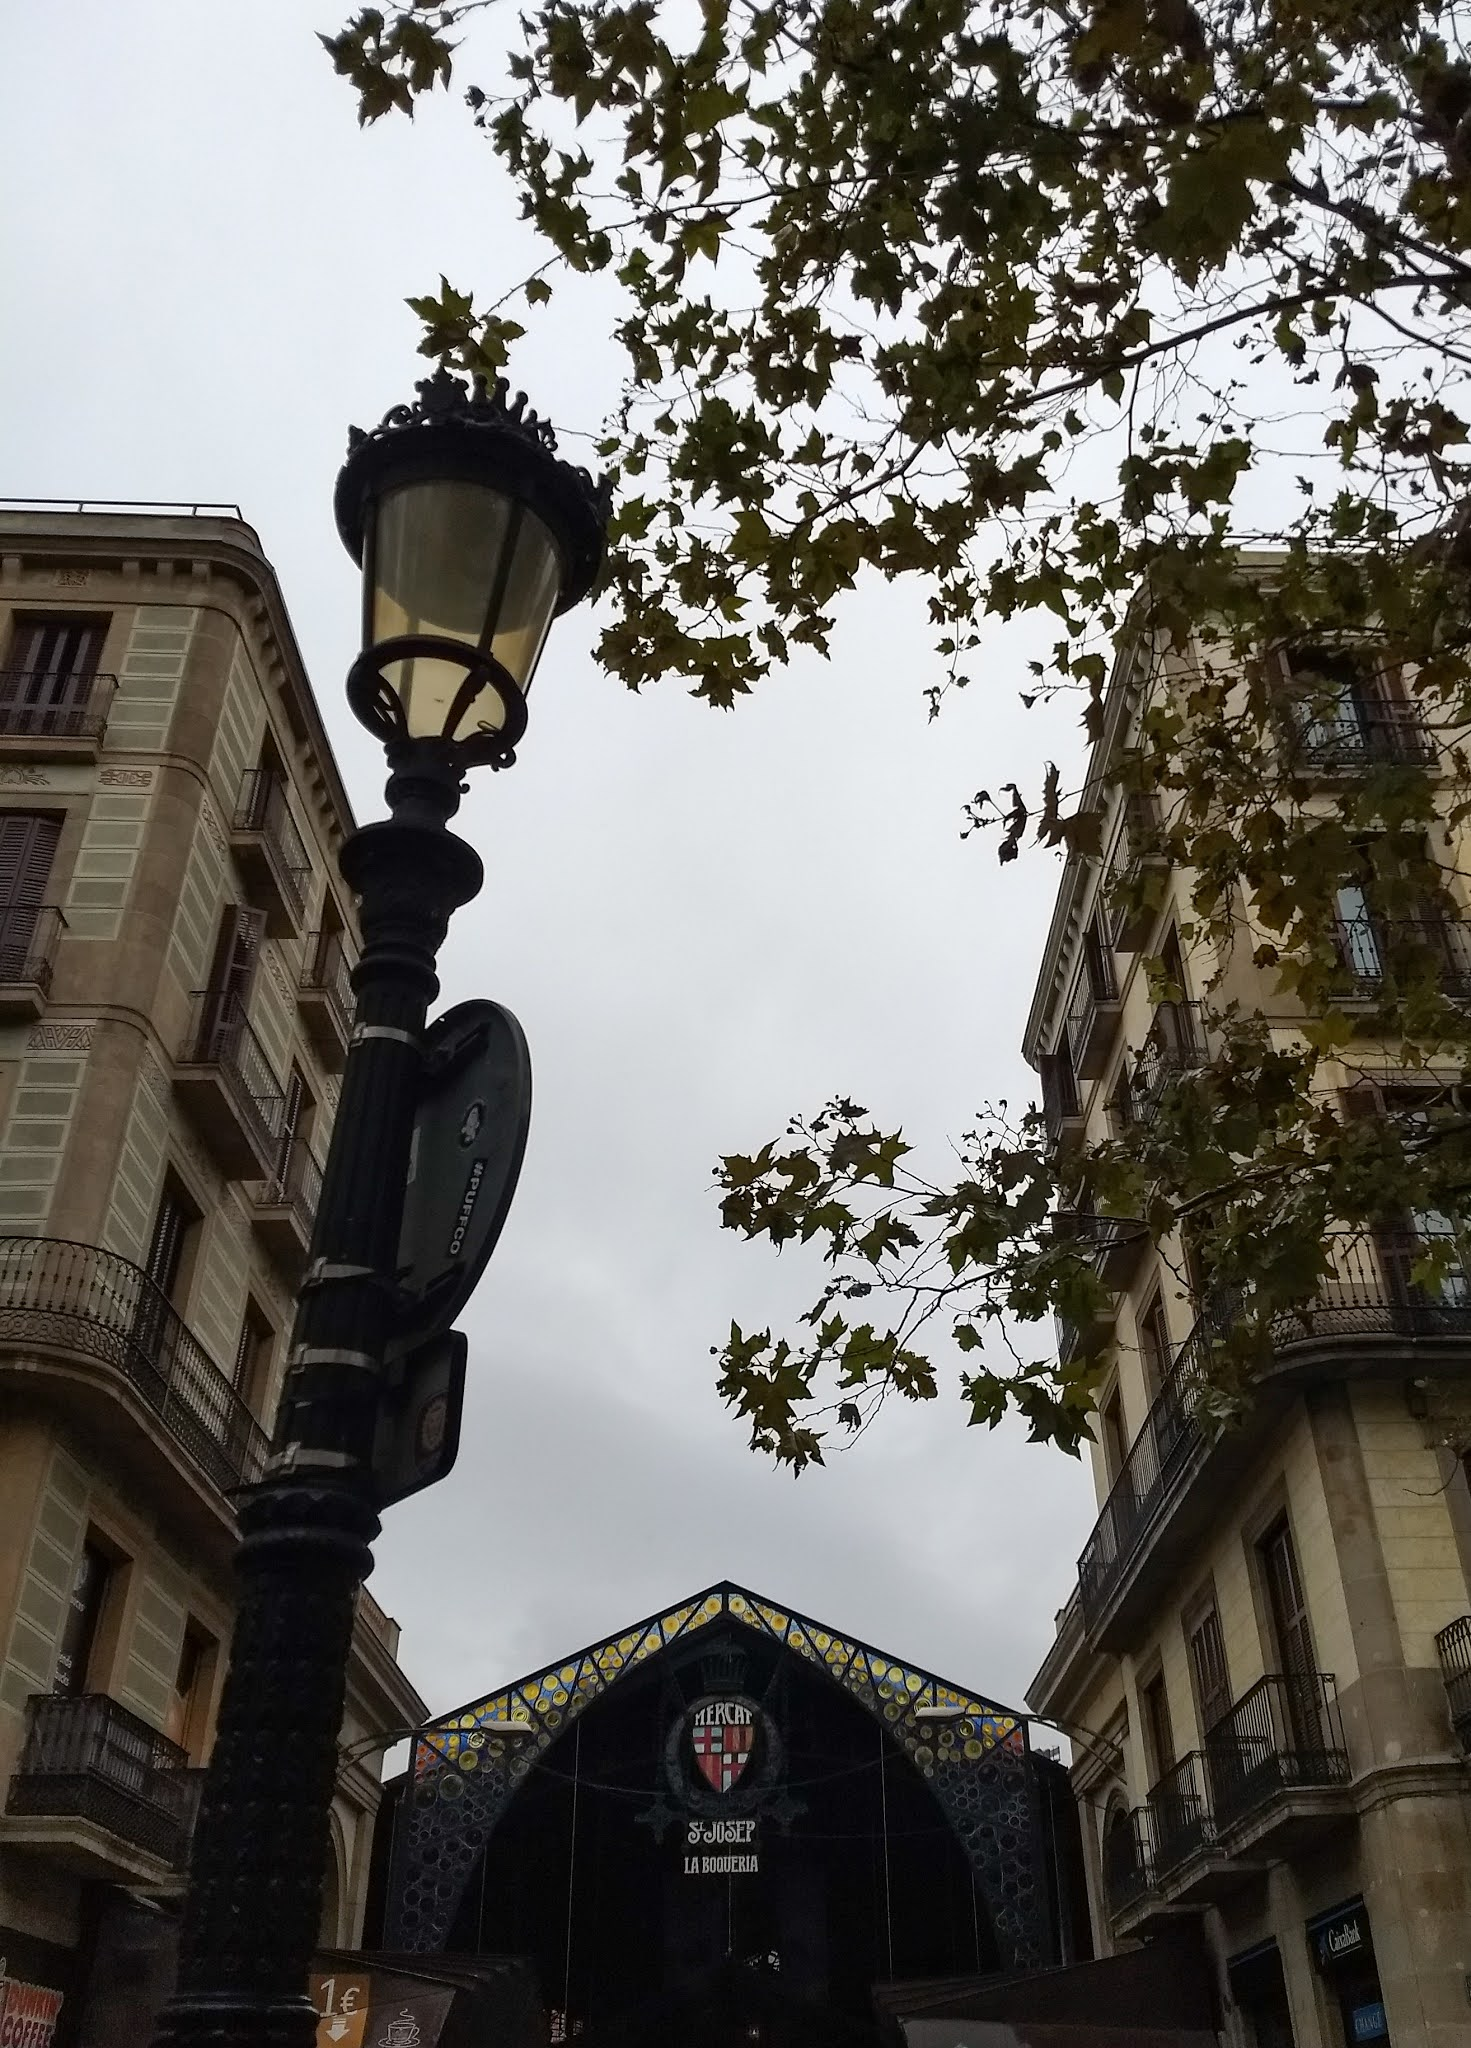 View of an entrance to Mercado de La Boqueria with trees and a lamp post in the foreground.